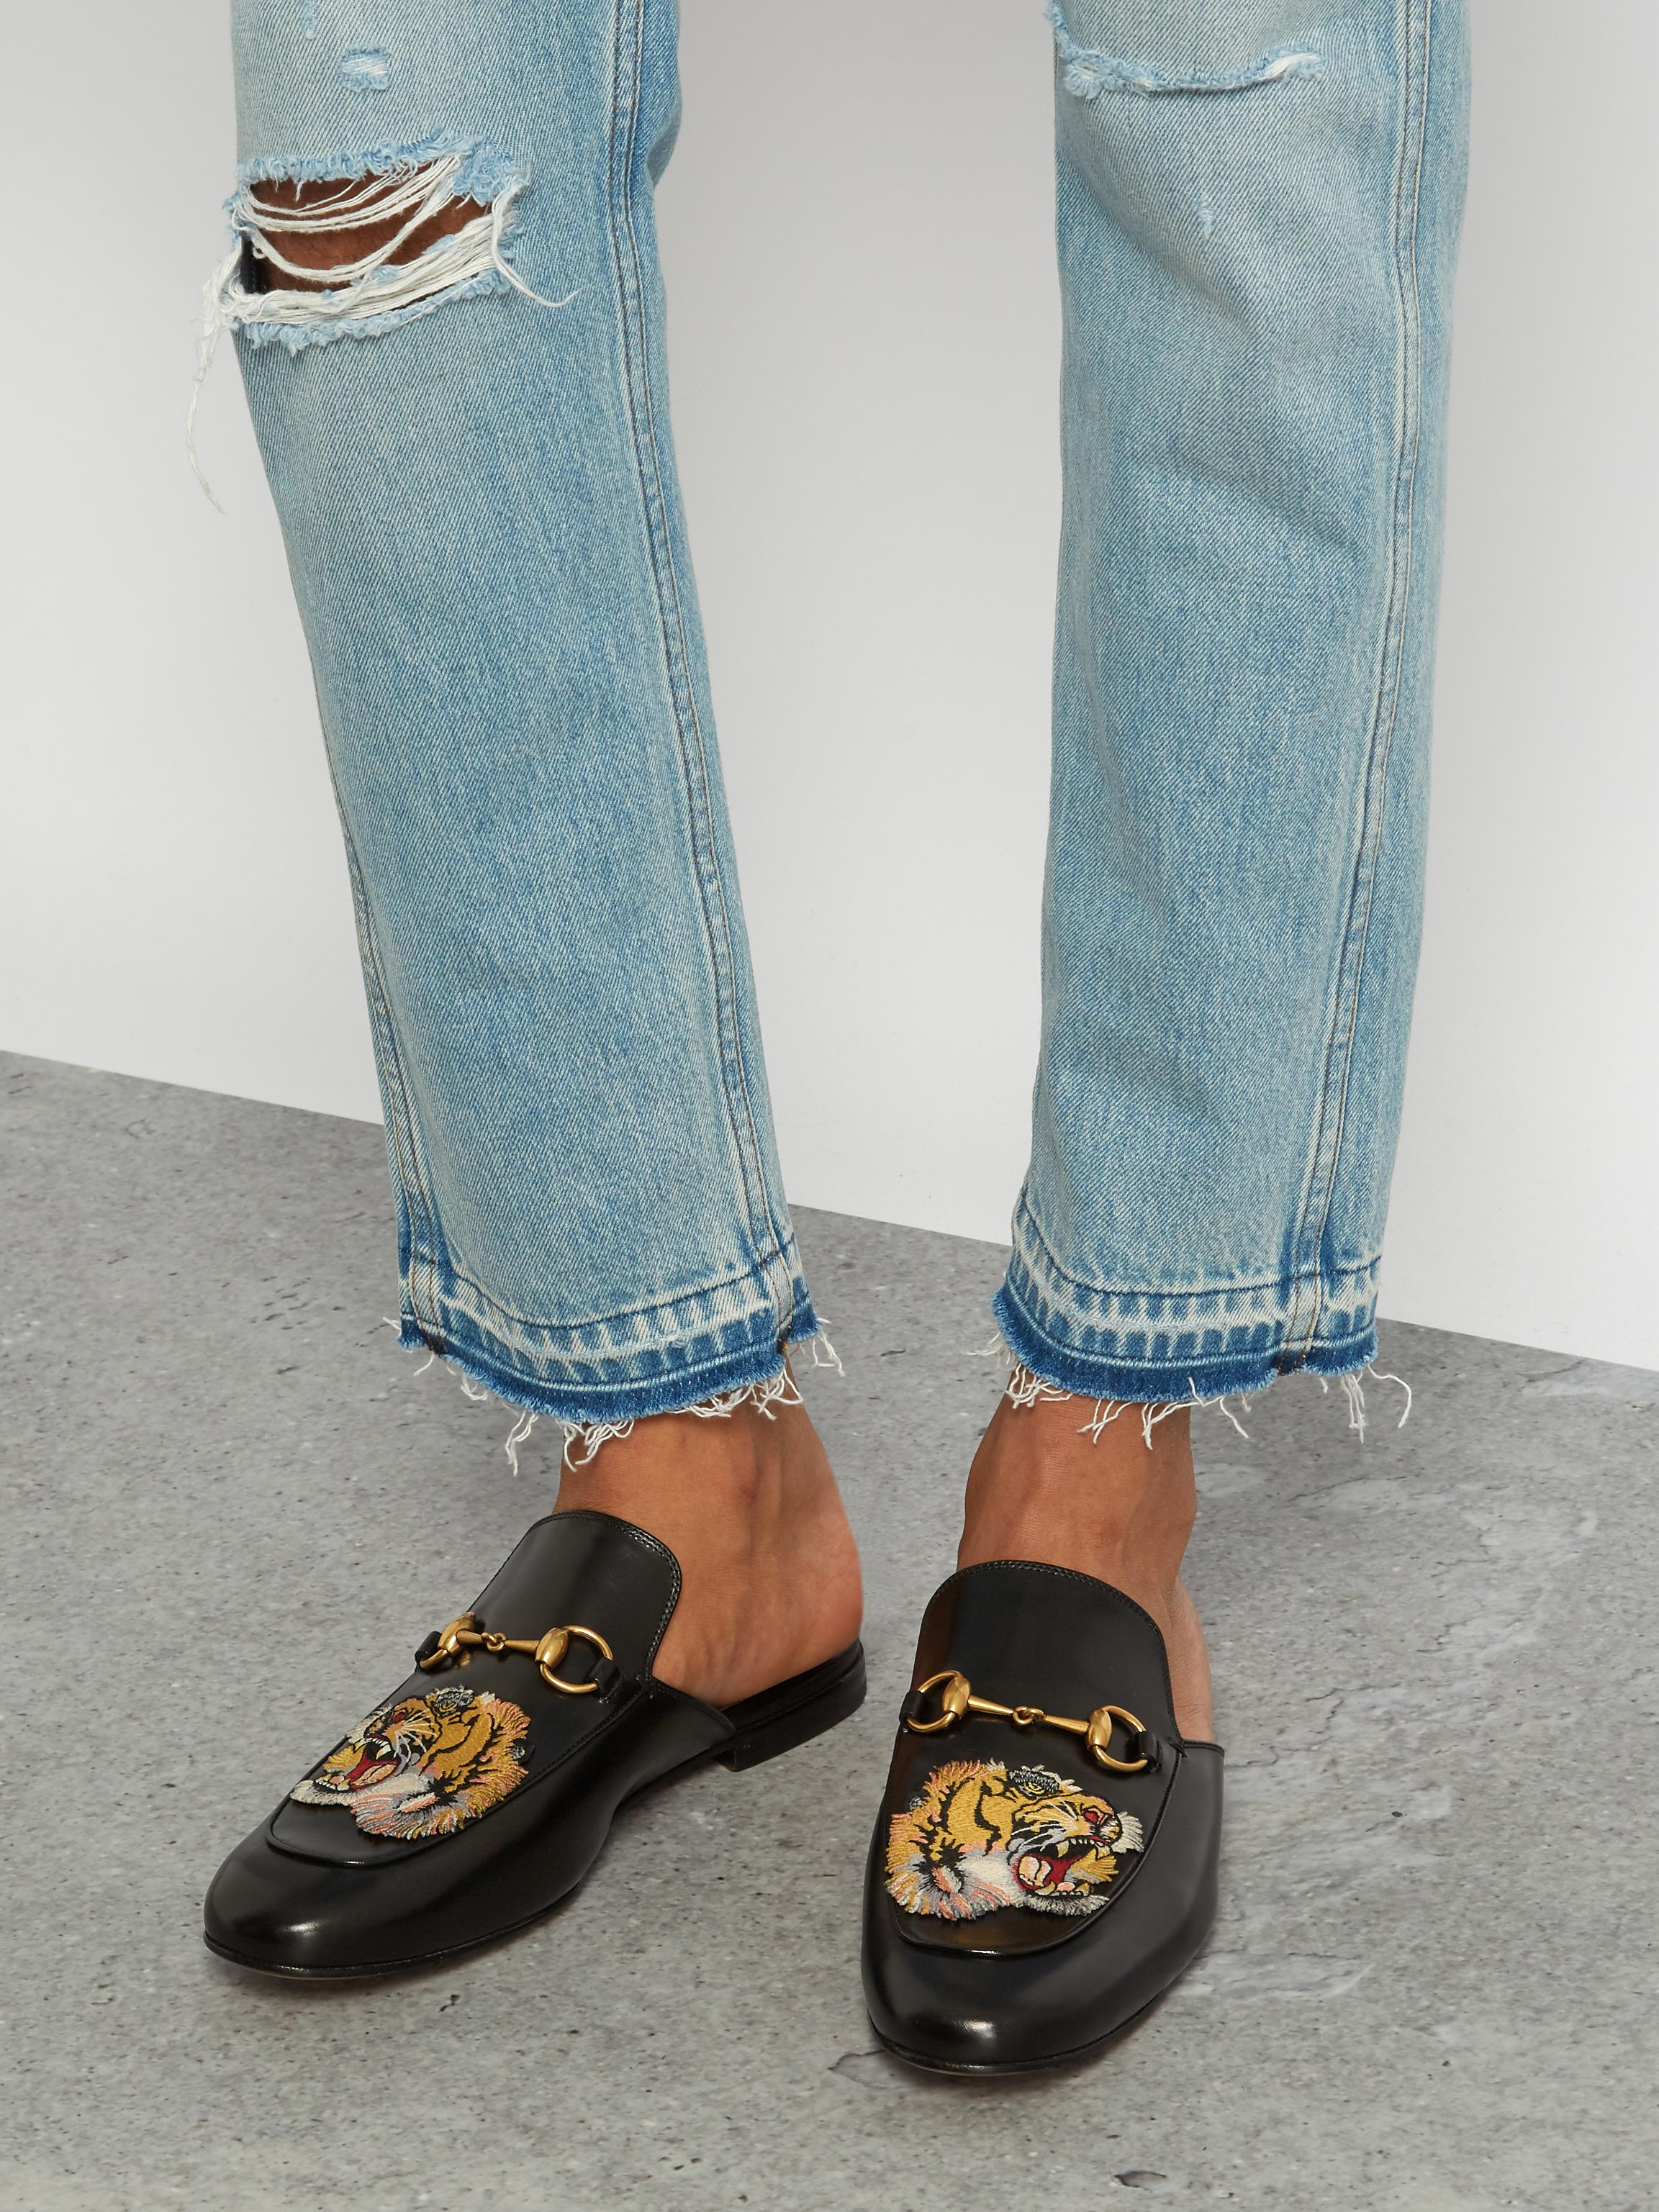 99a8e979bd6 Lyst - Gucci Tiger-head Embroidered Backless Loafers in Black for Men